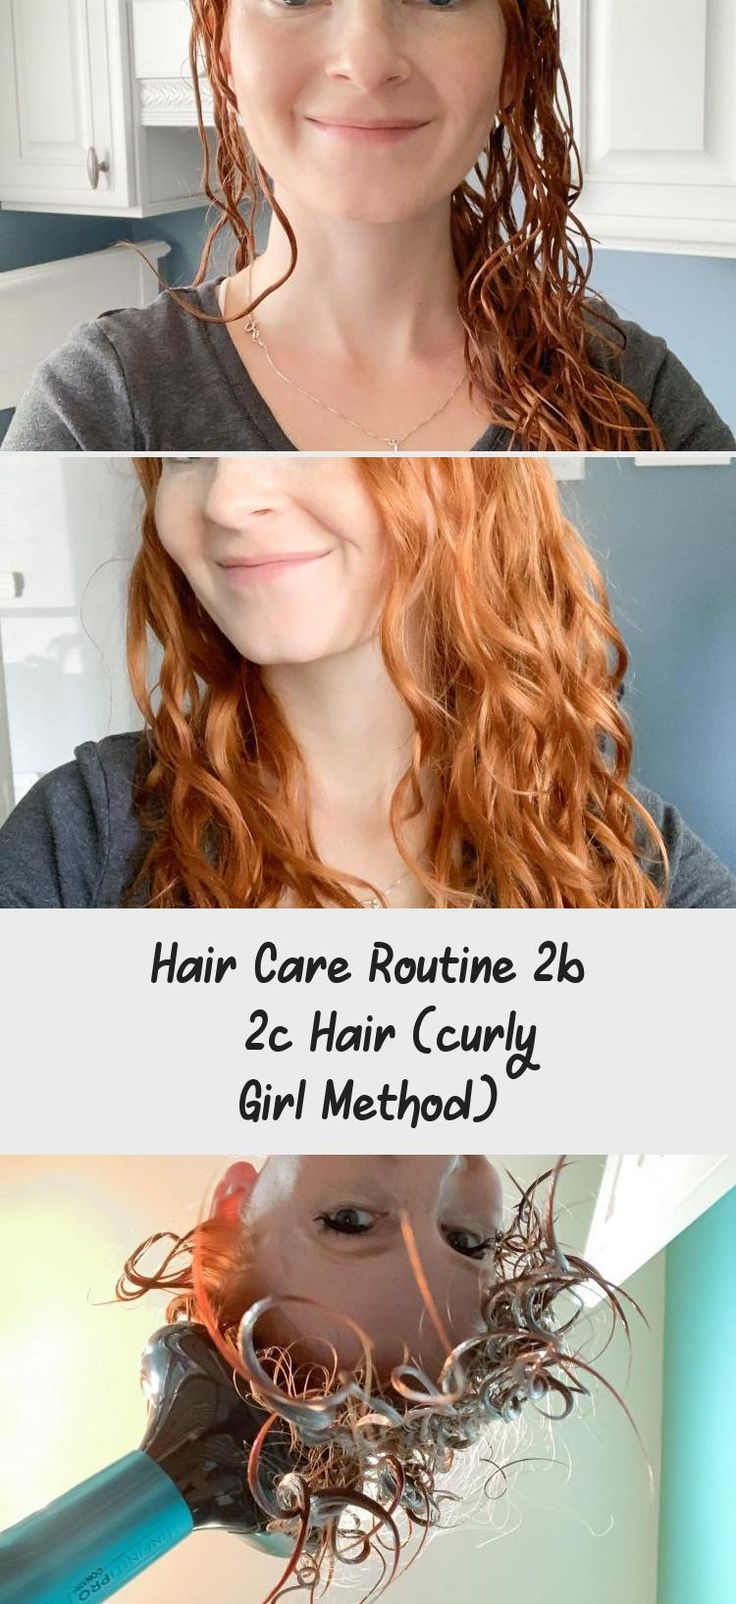 Hair Care Routine 2b 2c Hair (curly Girl Method Curly